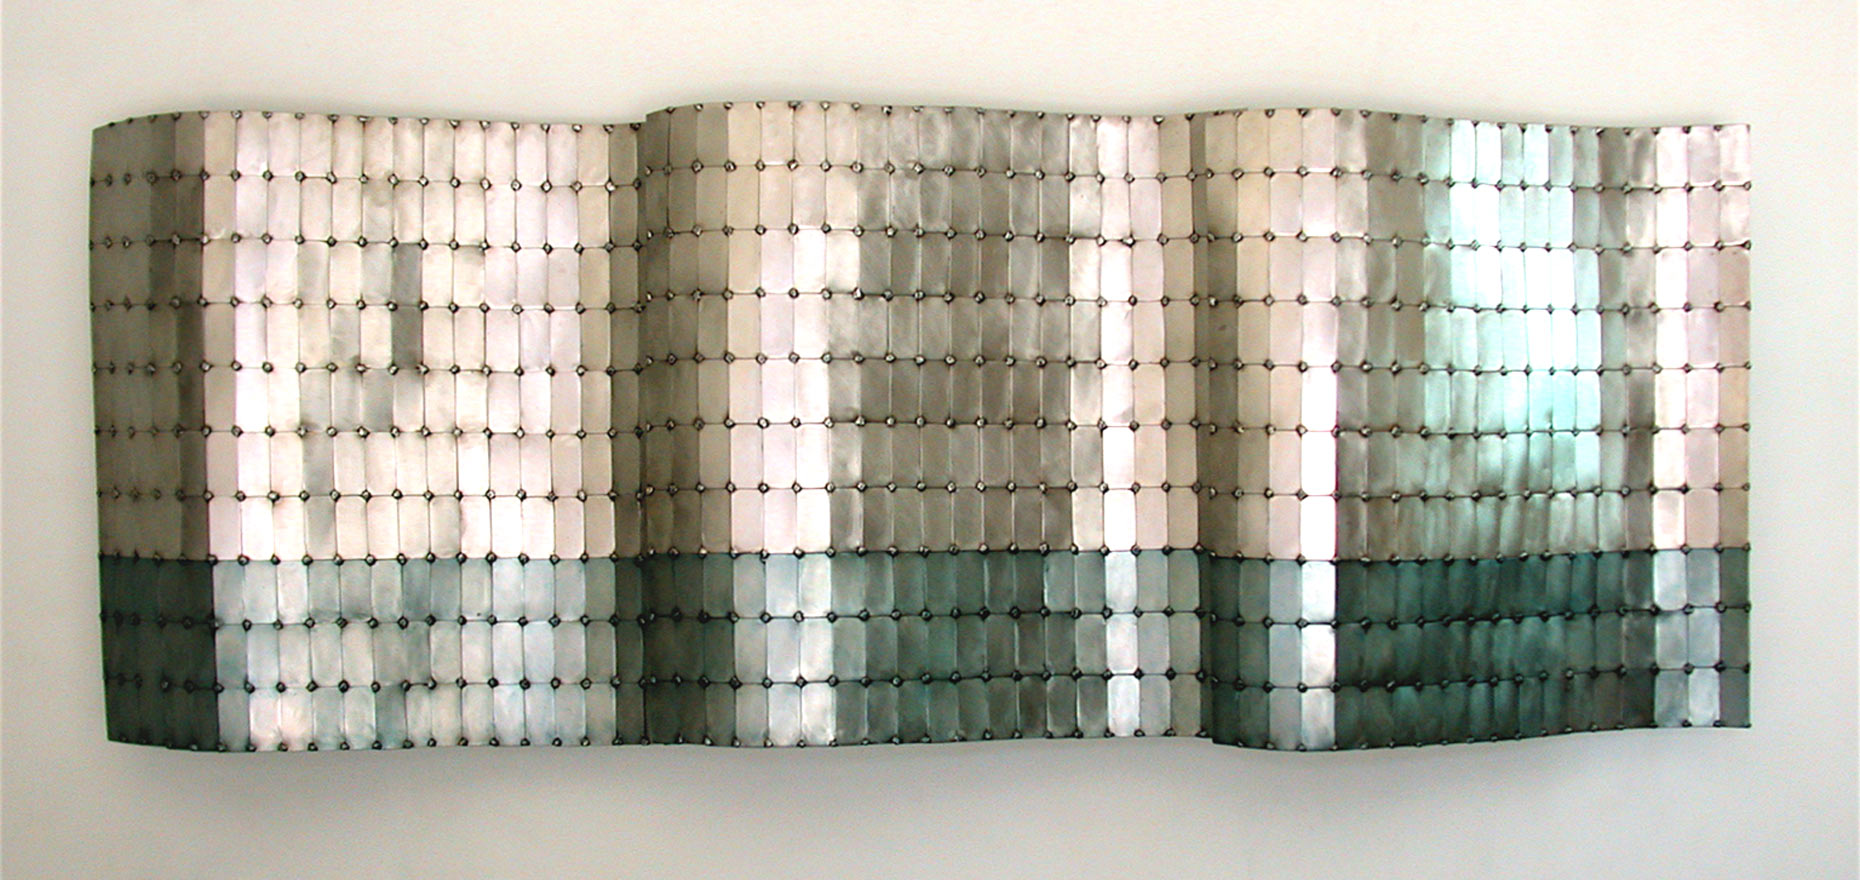 Three-Panel-Undulation sculptural wall piece by Peter Diepenbrock